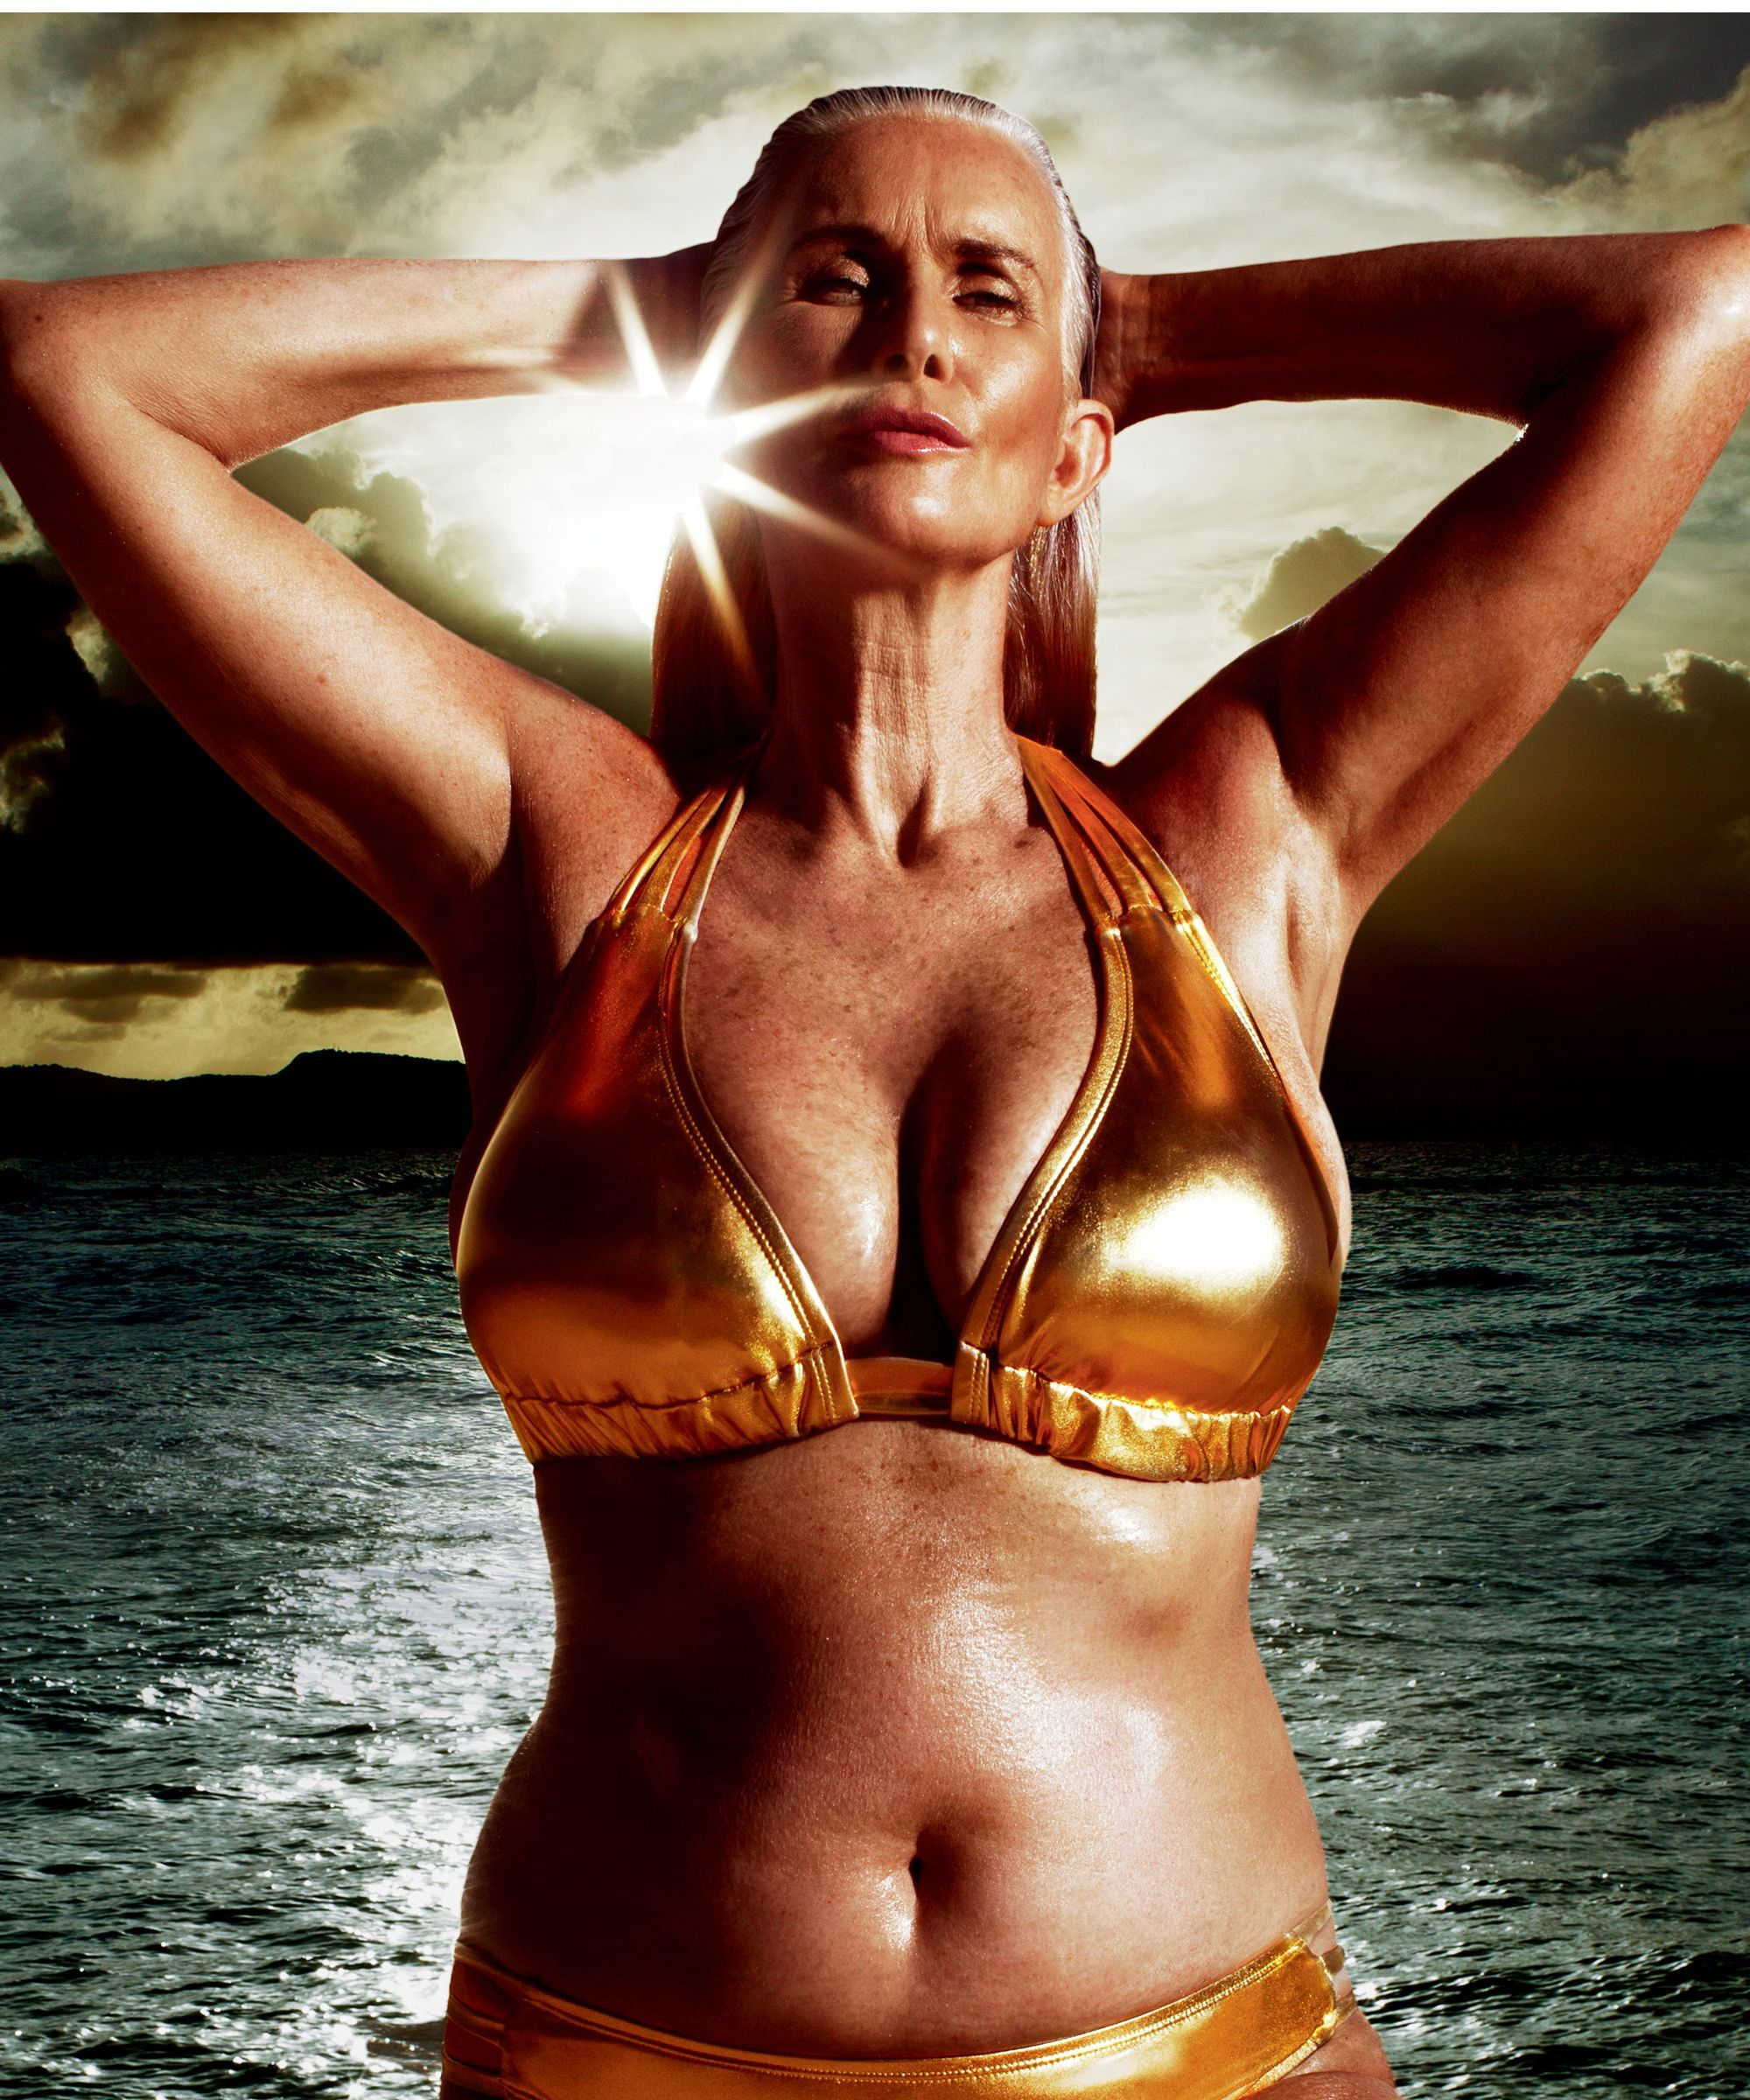 images This 60-Year-Old Swimsuit Model Proves Age is Just a Number